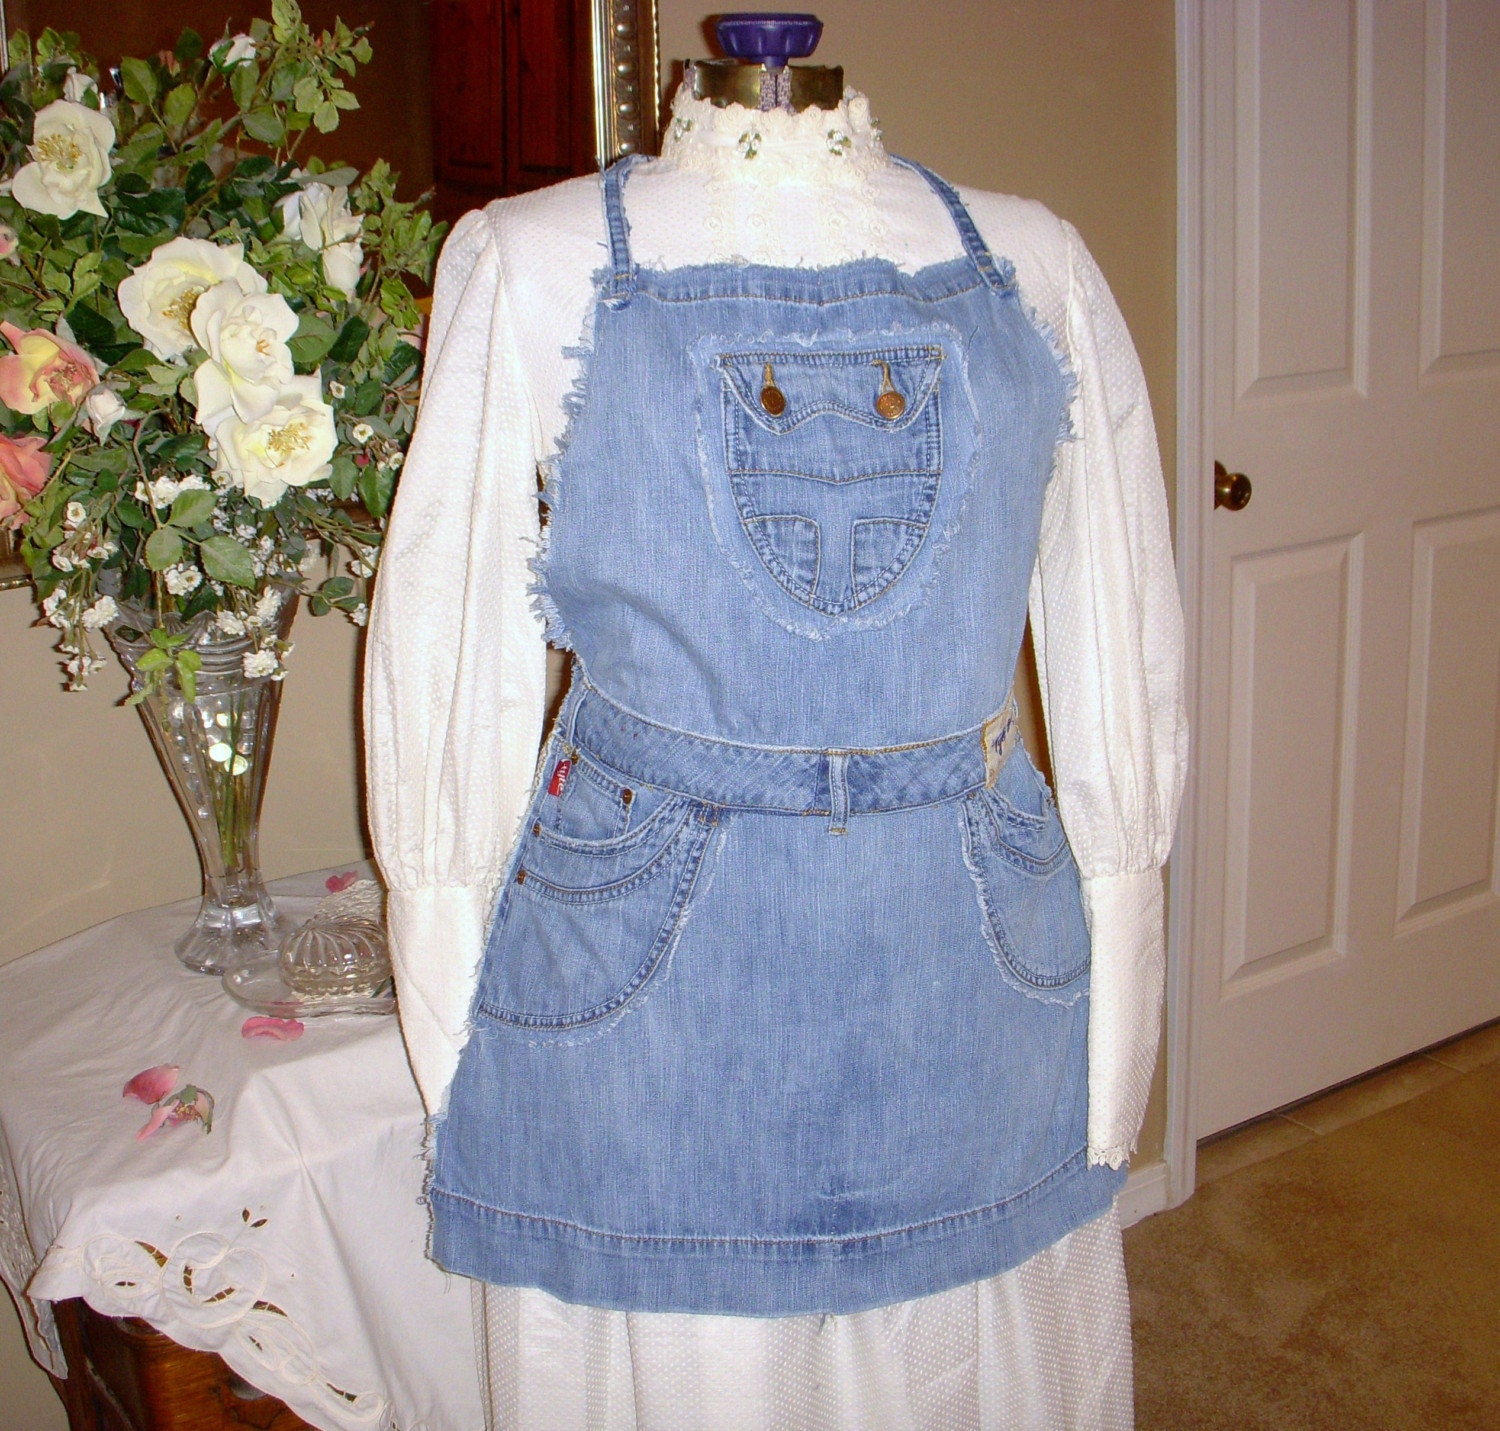 Handmade Clothing on Etsy - Recycled Blue Jean Apron by ljeans